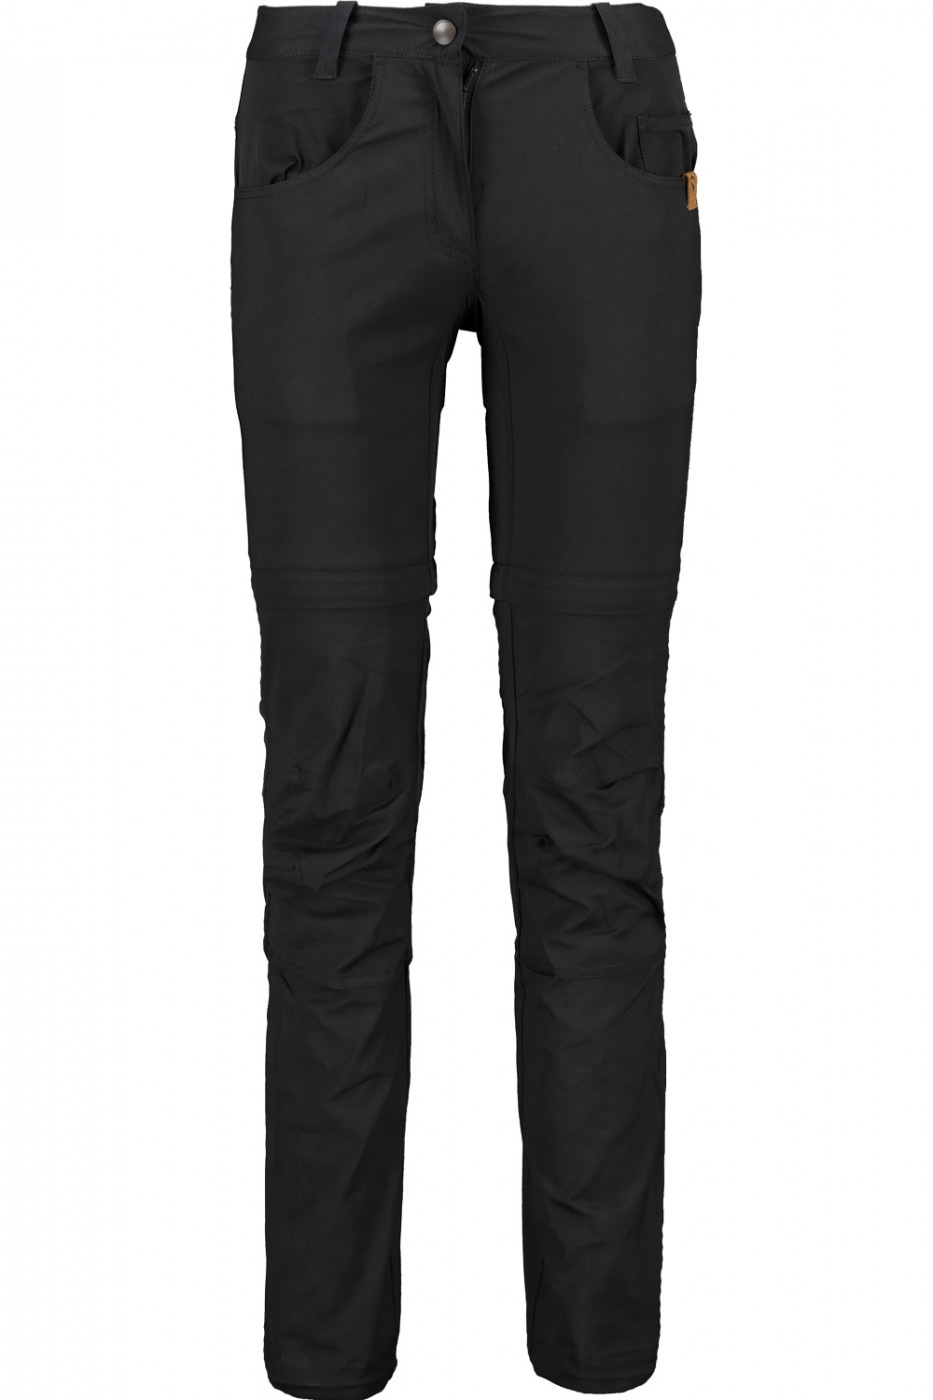 Women's pants NORTHFINDER NOTHIA